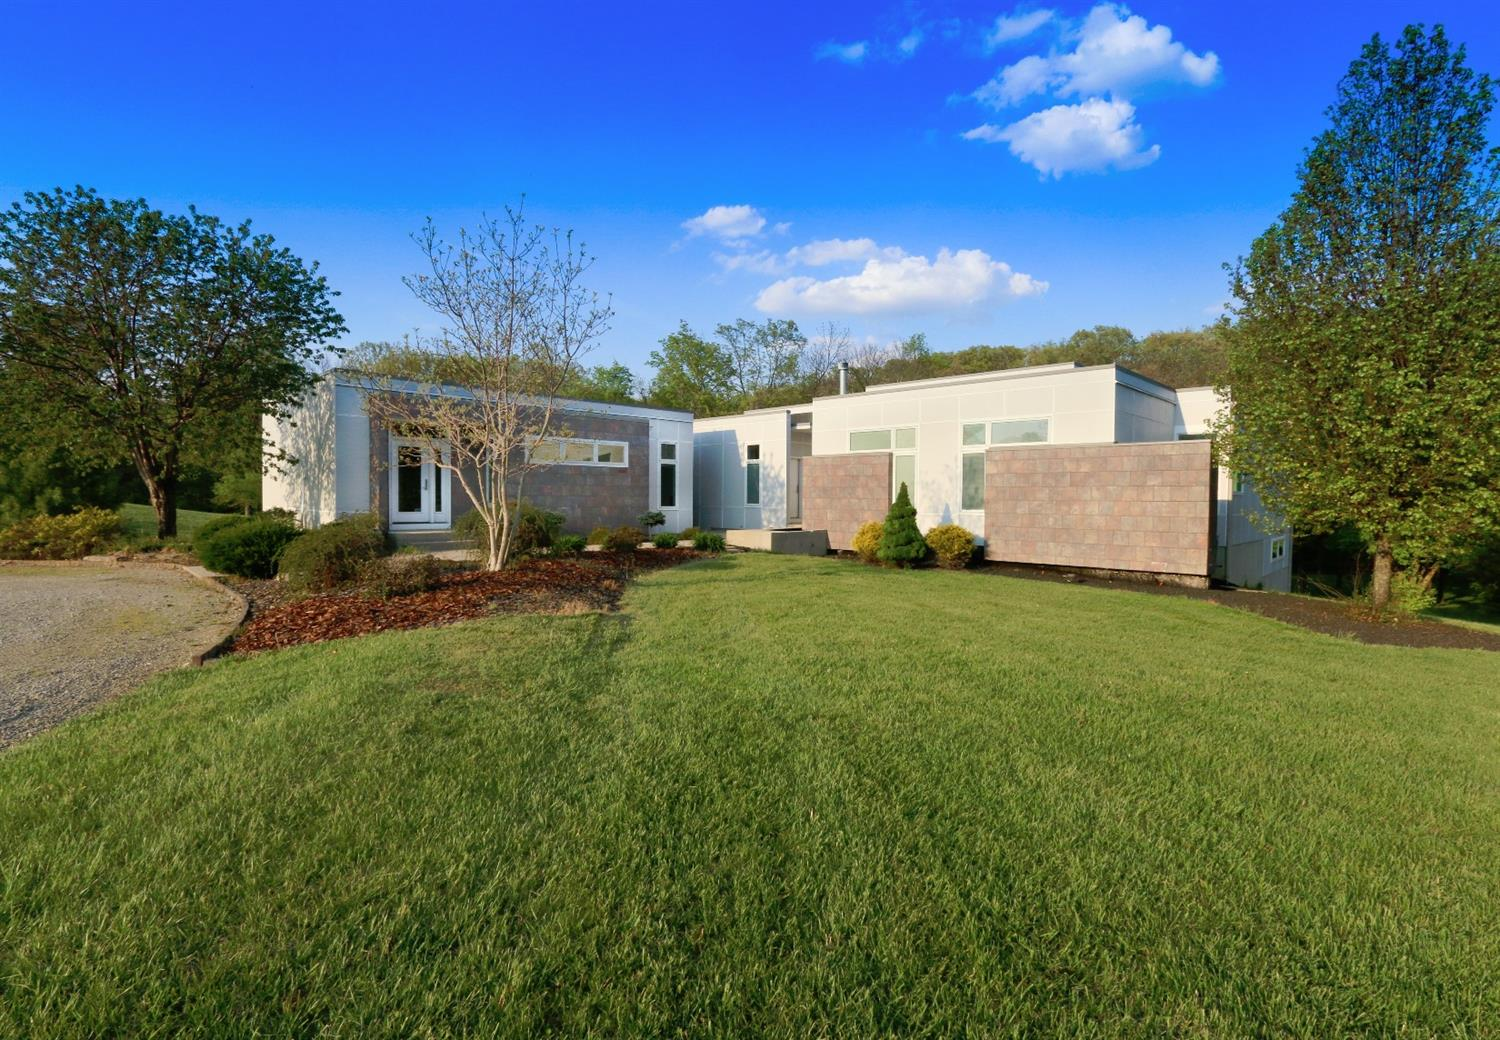 2092 S St Rt 123 Turtle Creek Twp., OH